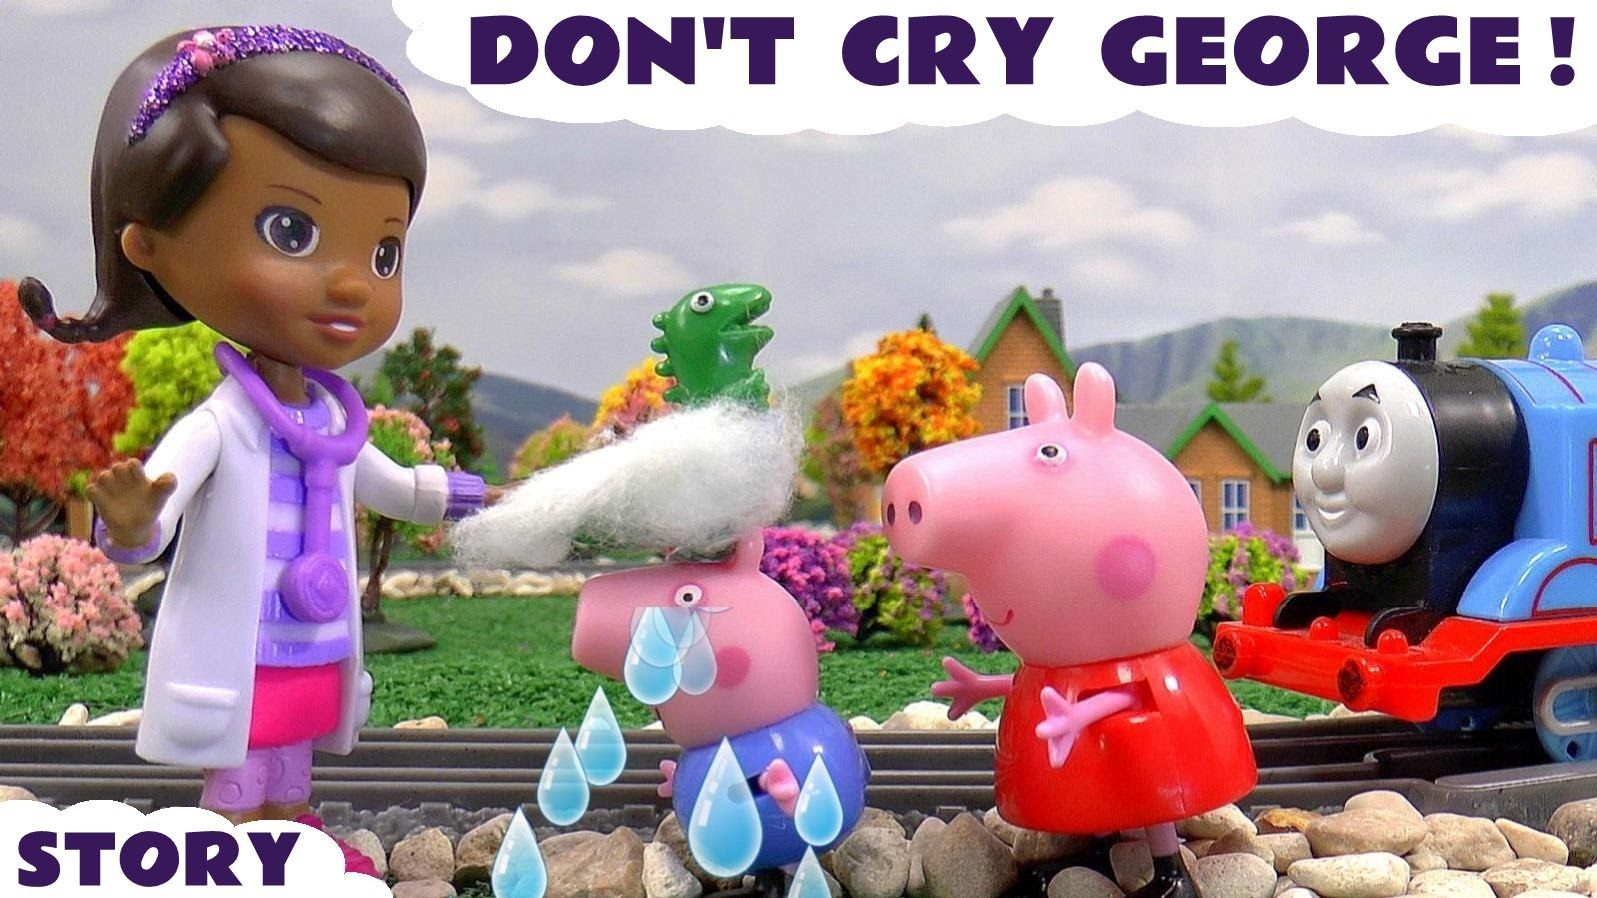 Peppa Pig Toy Dinosaur Accident Thomas And Friends Doc Mcstuffinstoys Rescue Story Don T Cry George Peppa Pig Toys Thomas And Friends Peppa Pig